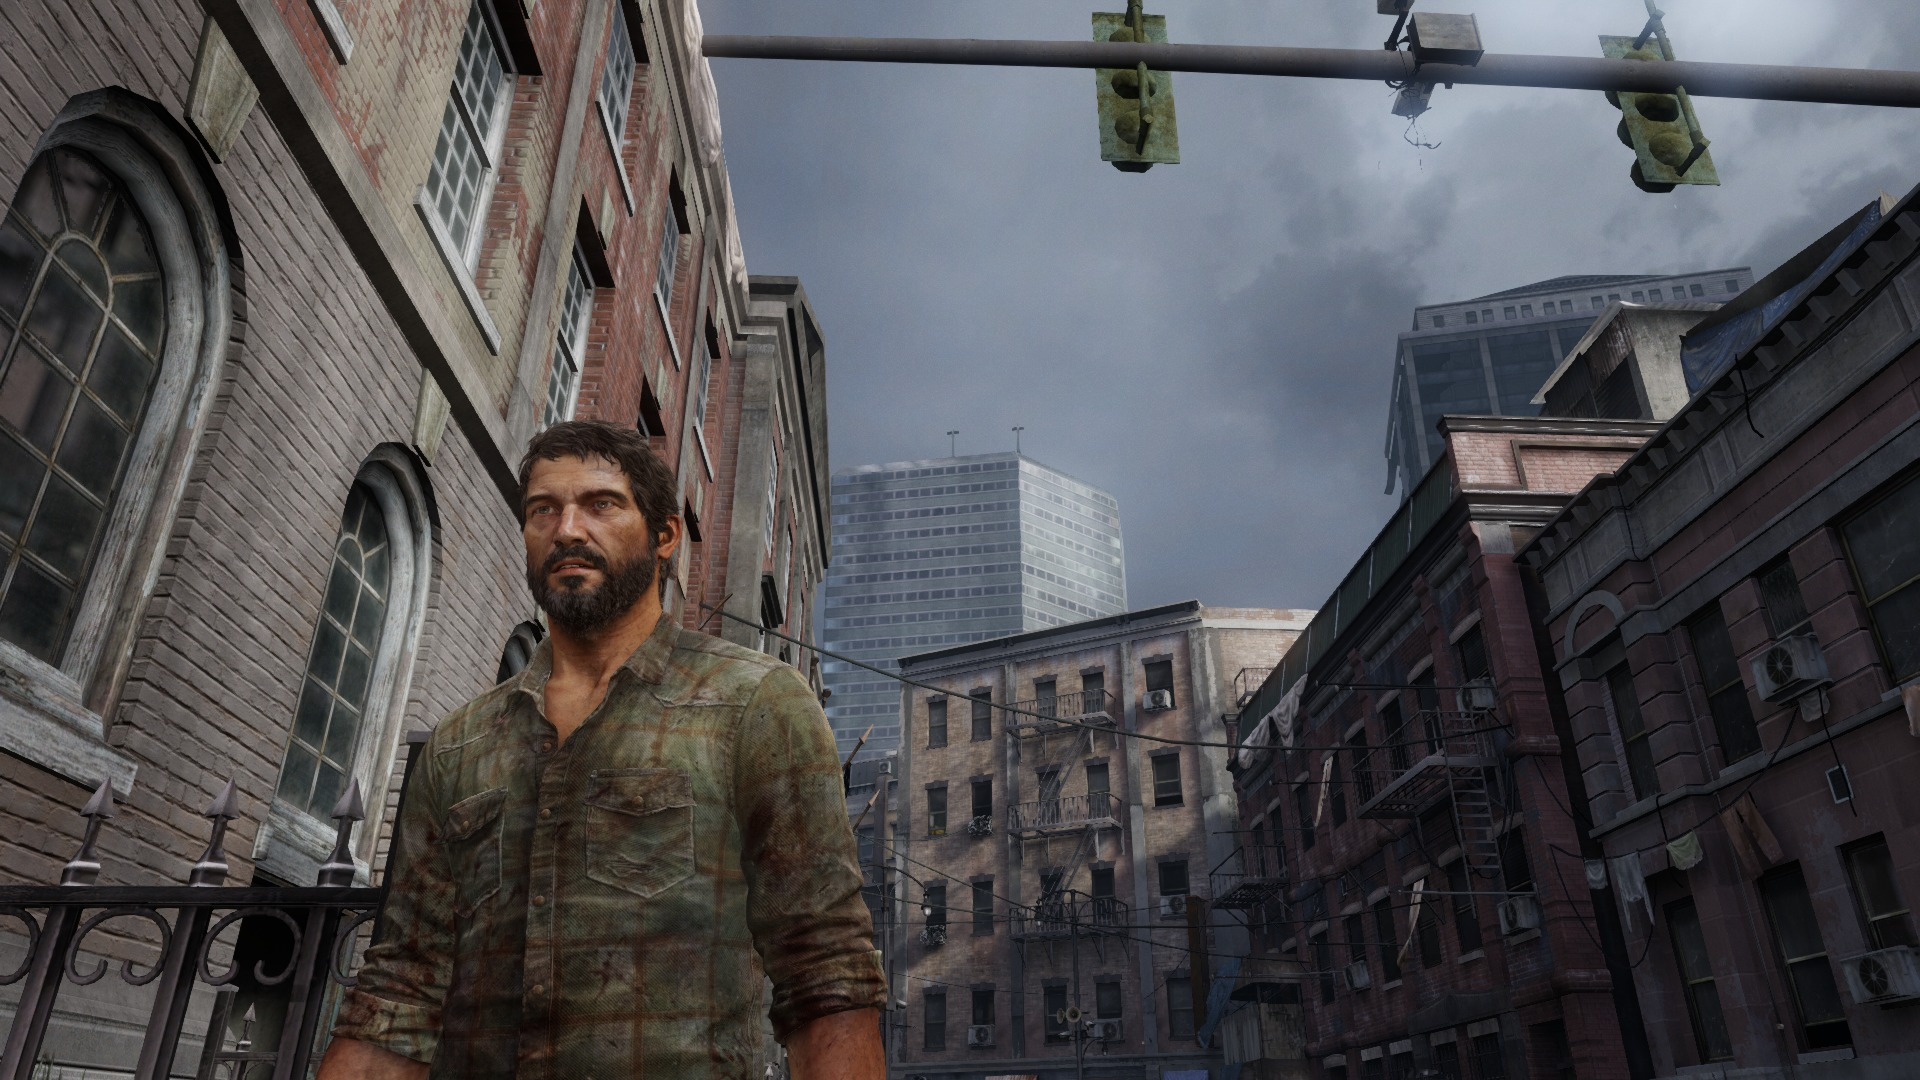 tlou remastered matchmaking problems As it continues to work to fix problem's with the game's matchmaking, naughty dog releases two free multiplayer maps as a gesture to fans in a blog post on its official site, naughty dog acknowledged ongoing problems with the matchmaking in the last of us: remastered, writing: we've been working.